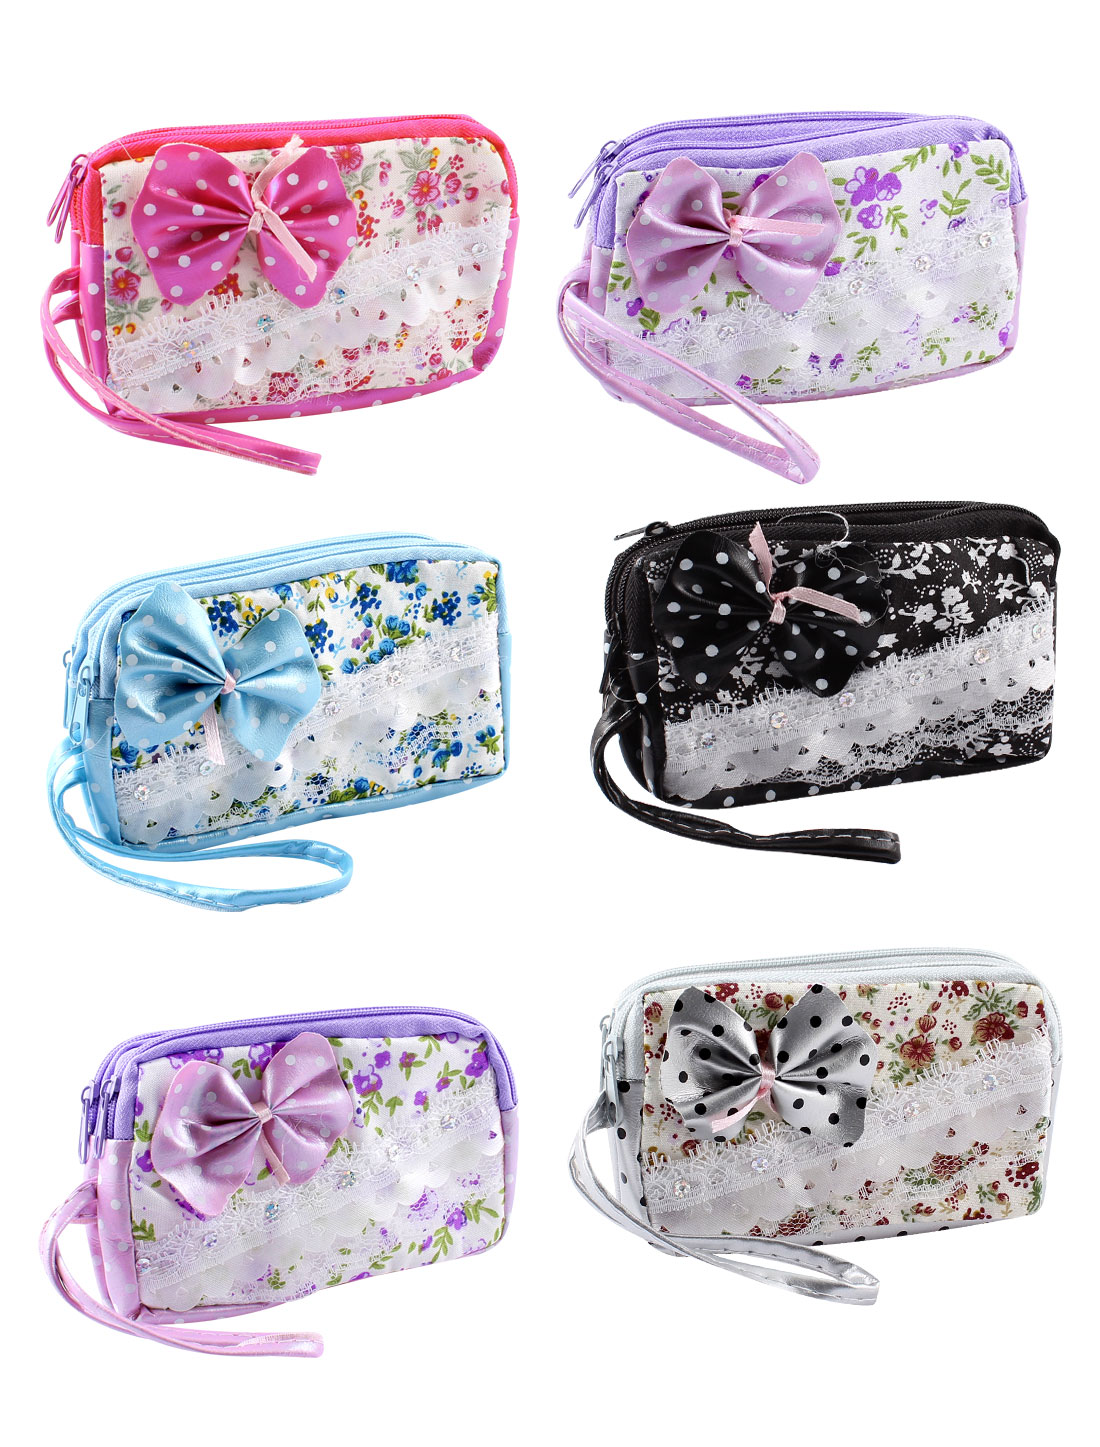 6pcs Colorful Zip Up Two Compartments Flower Pattern Bowknot Detail Cellphone Coins Cards Handbag Purse Bags for Lady